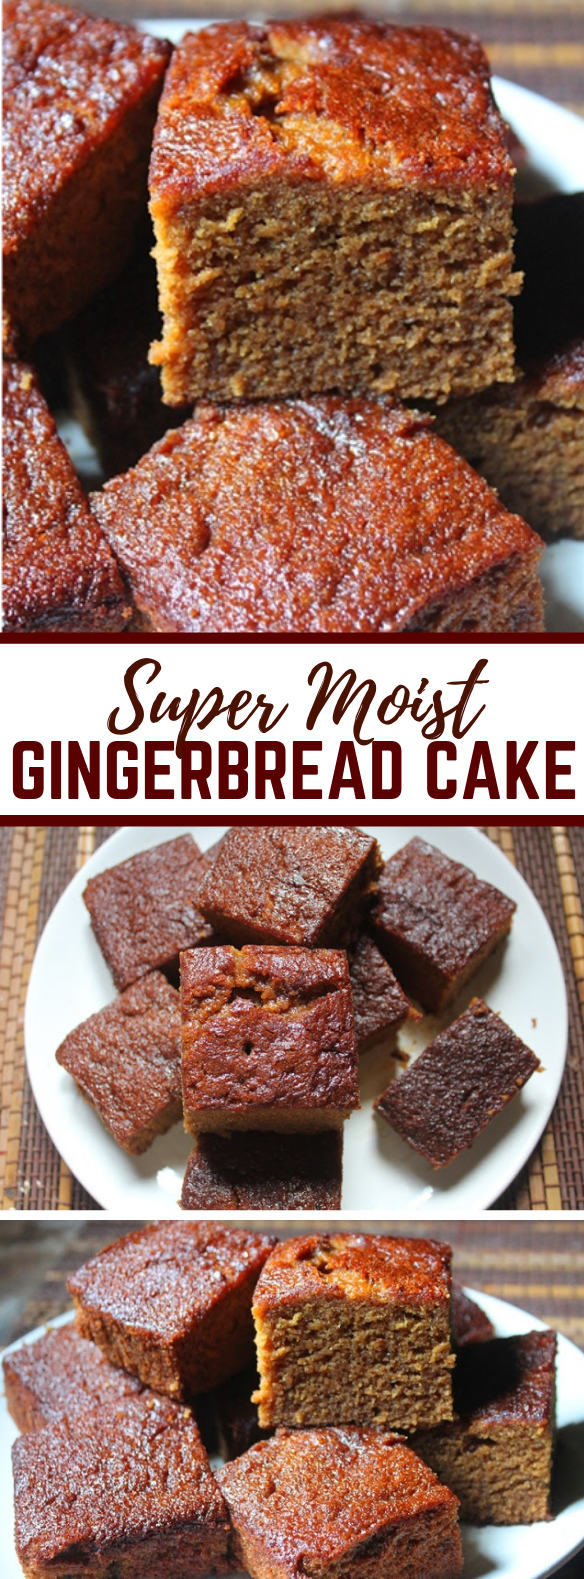 SUPER MOIST GINGERBREAD CAKE RECIPE – GINGERBREAD SNACKING CAKE RECIPE #dessert #chocolate